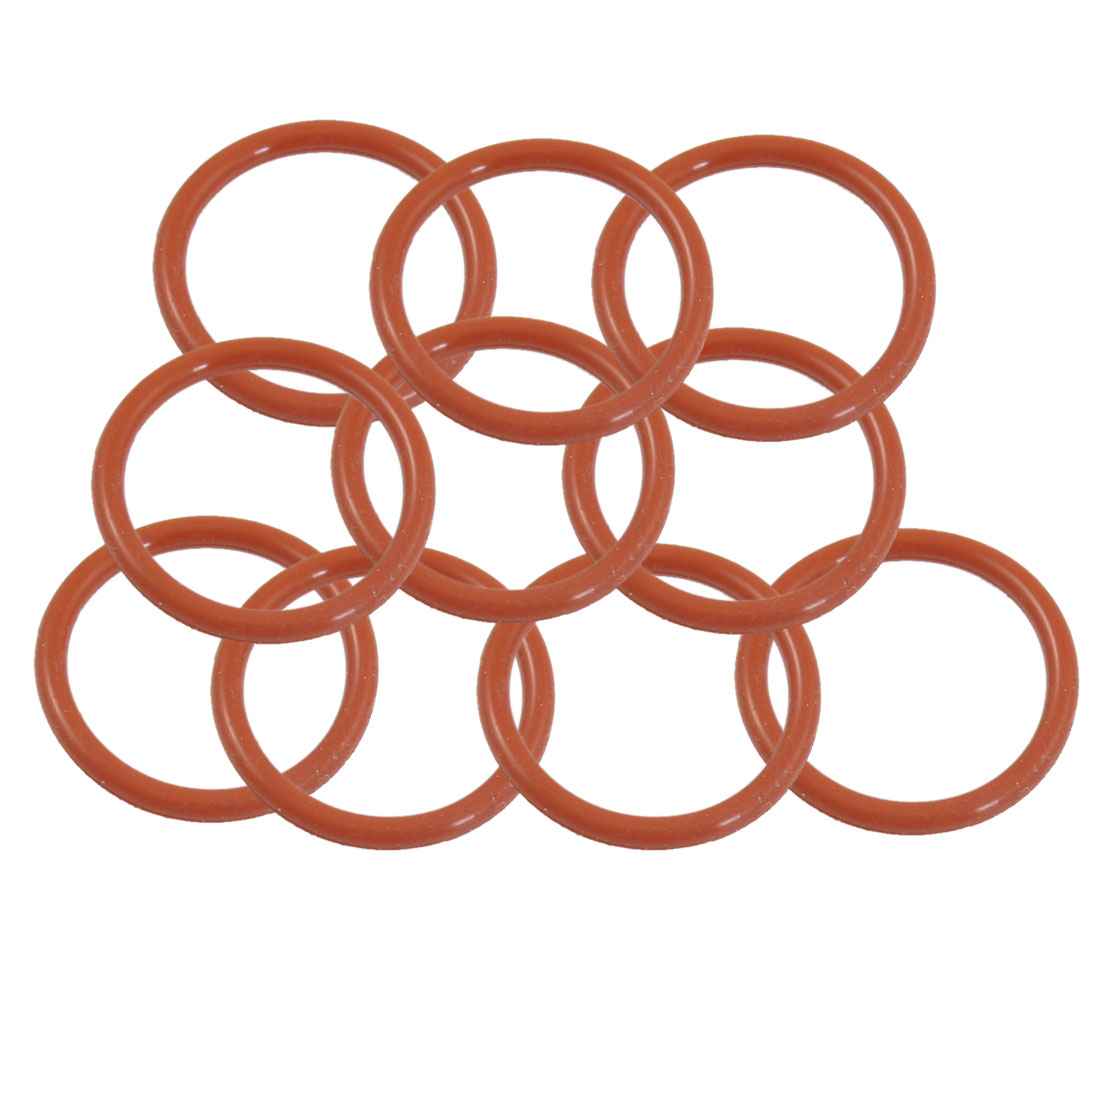 10 Pcs Red Mechanical Nitrile Rubber O Ring Oil Seal Gaskets 34mm x 28mm x 4mm